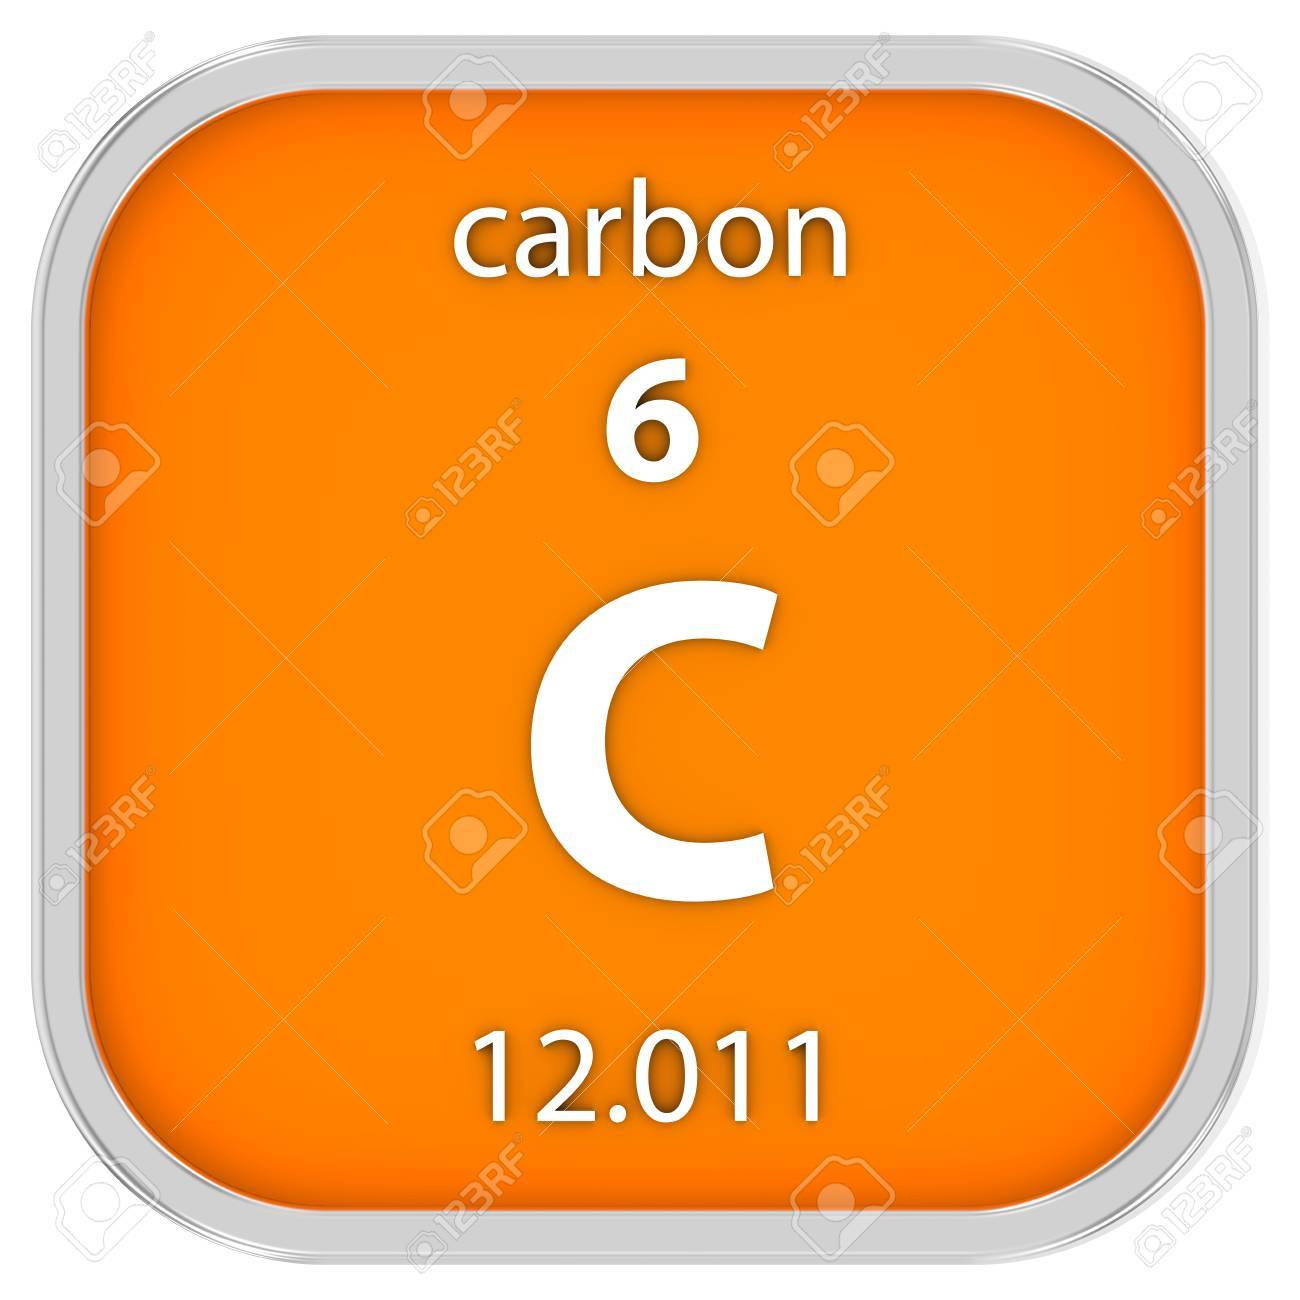 Carbon material on the periodic table part of a series stock photo carbon material on the periodic table part of a series stock photo 39429330 urtaz Gallery